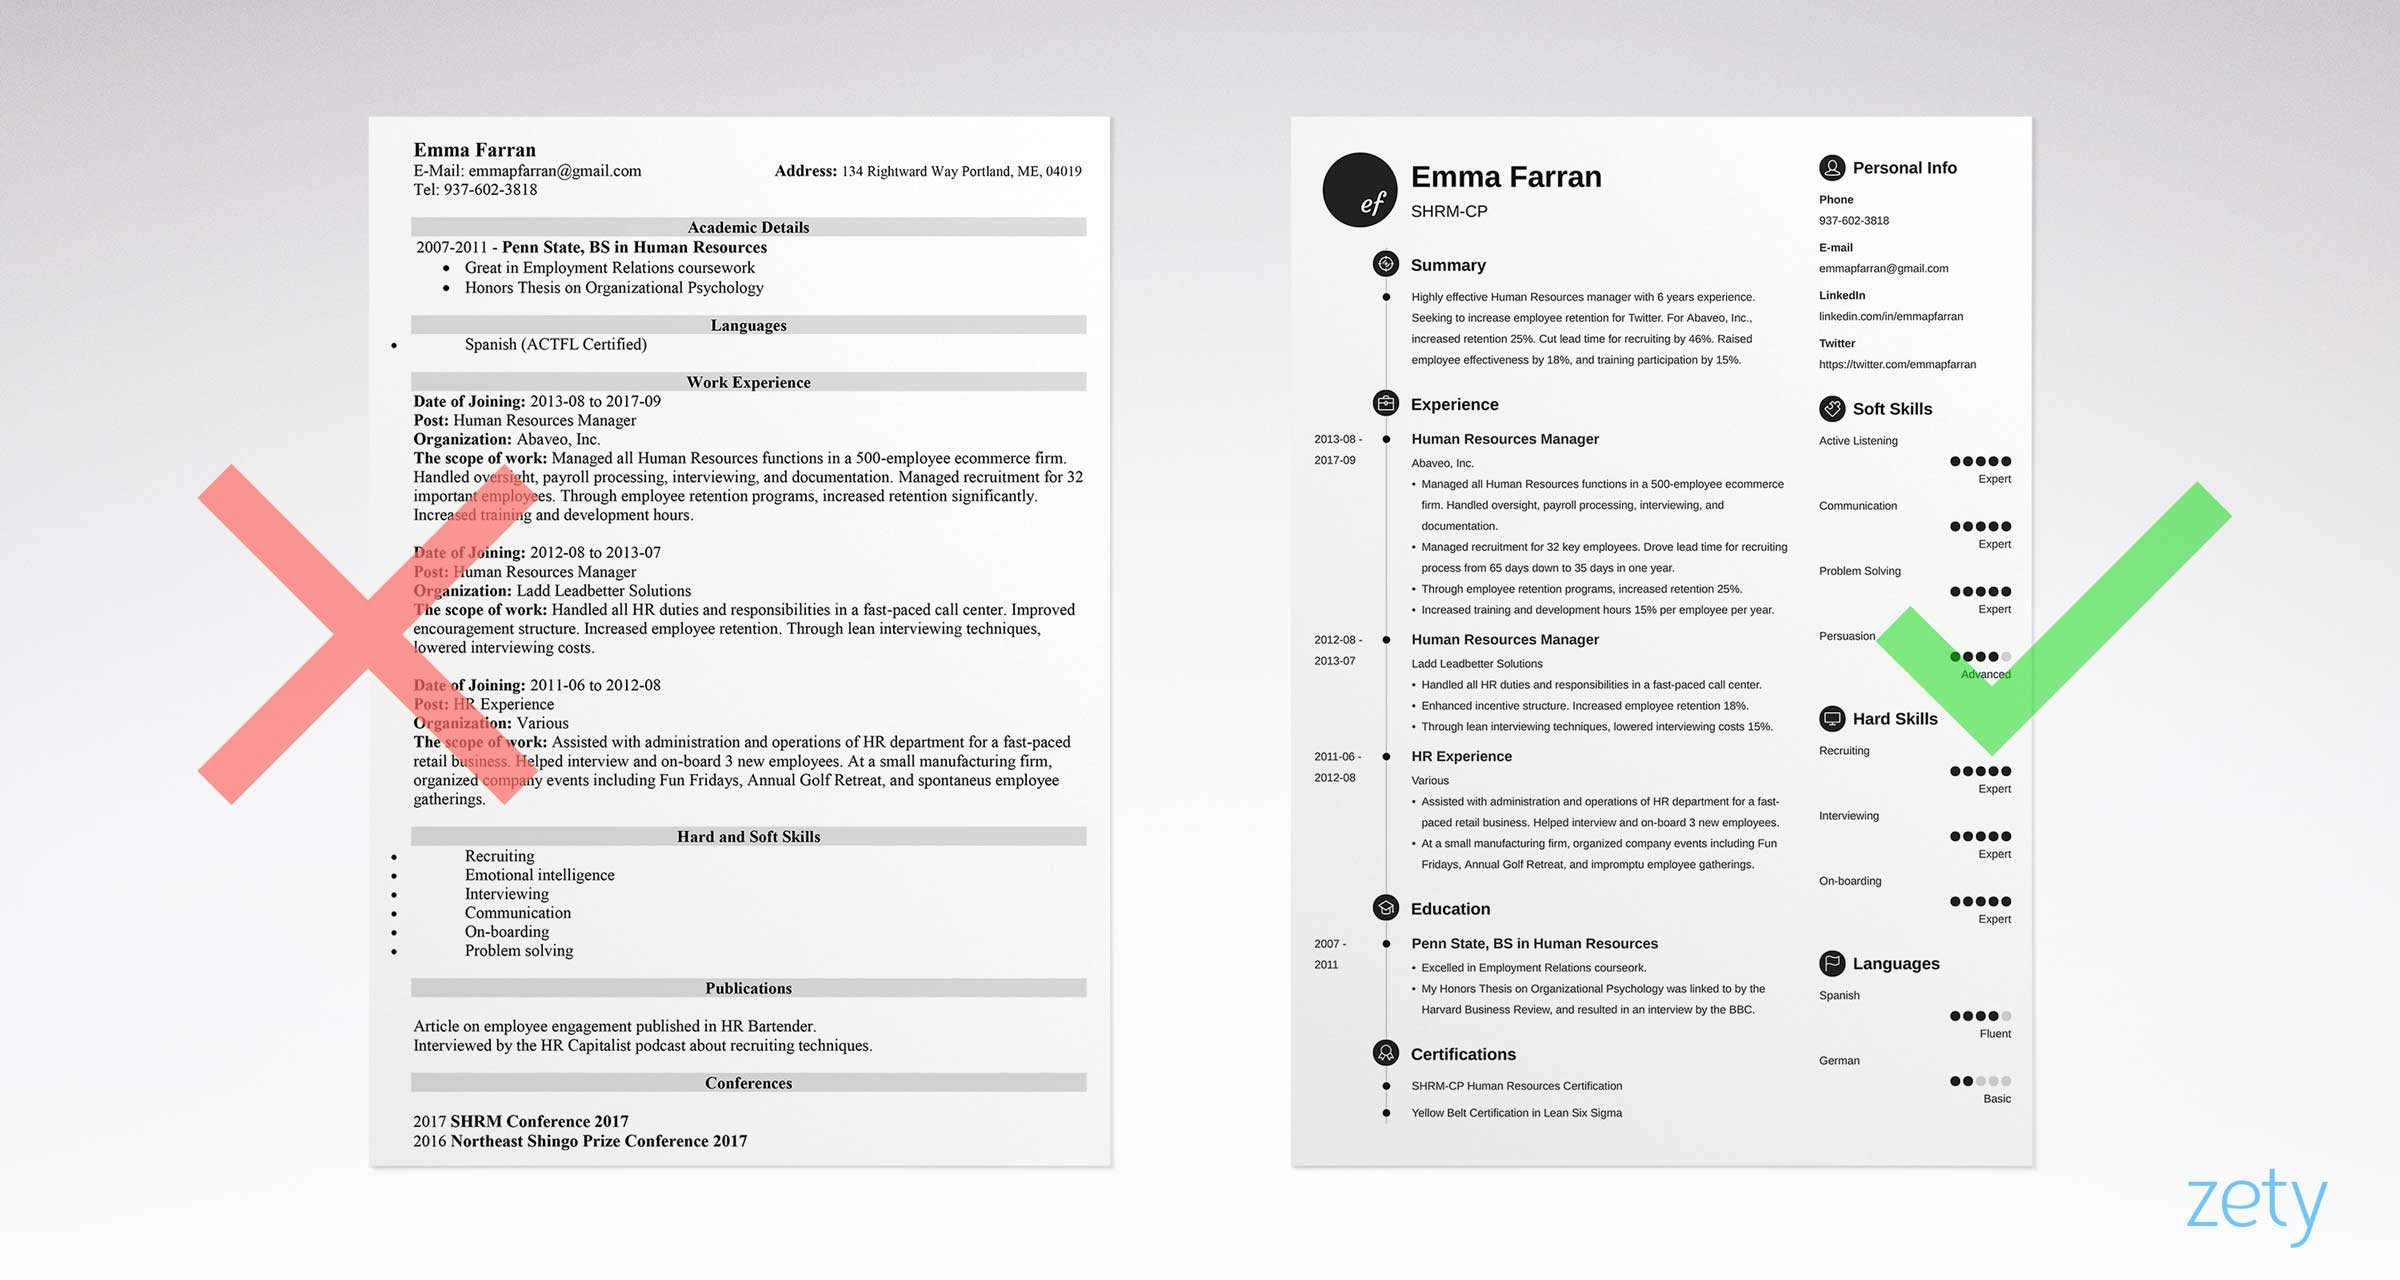 infographic resume templates 18 8 - Infographic Resume Template